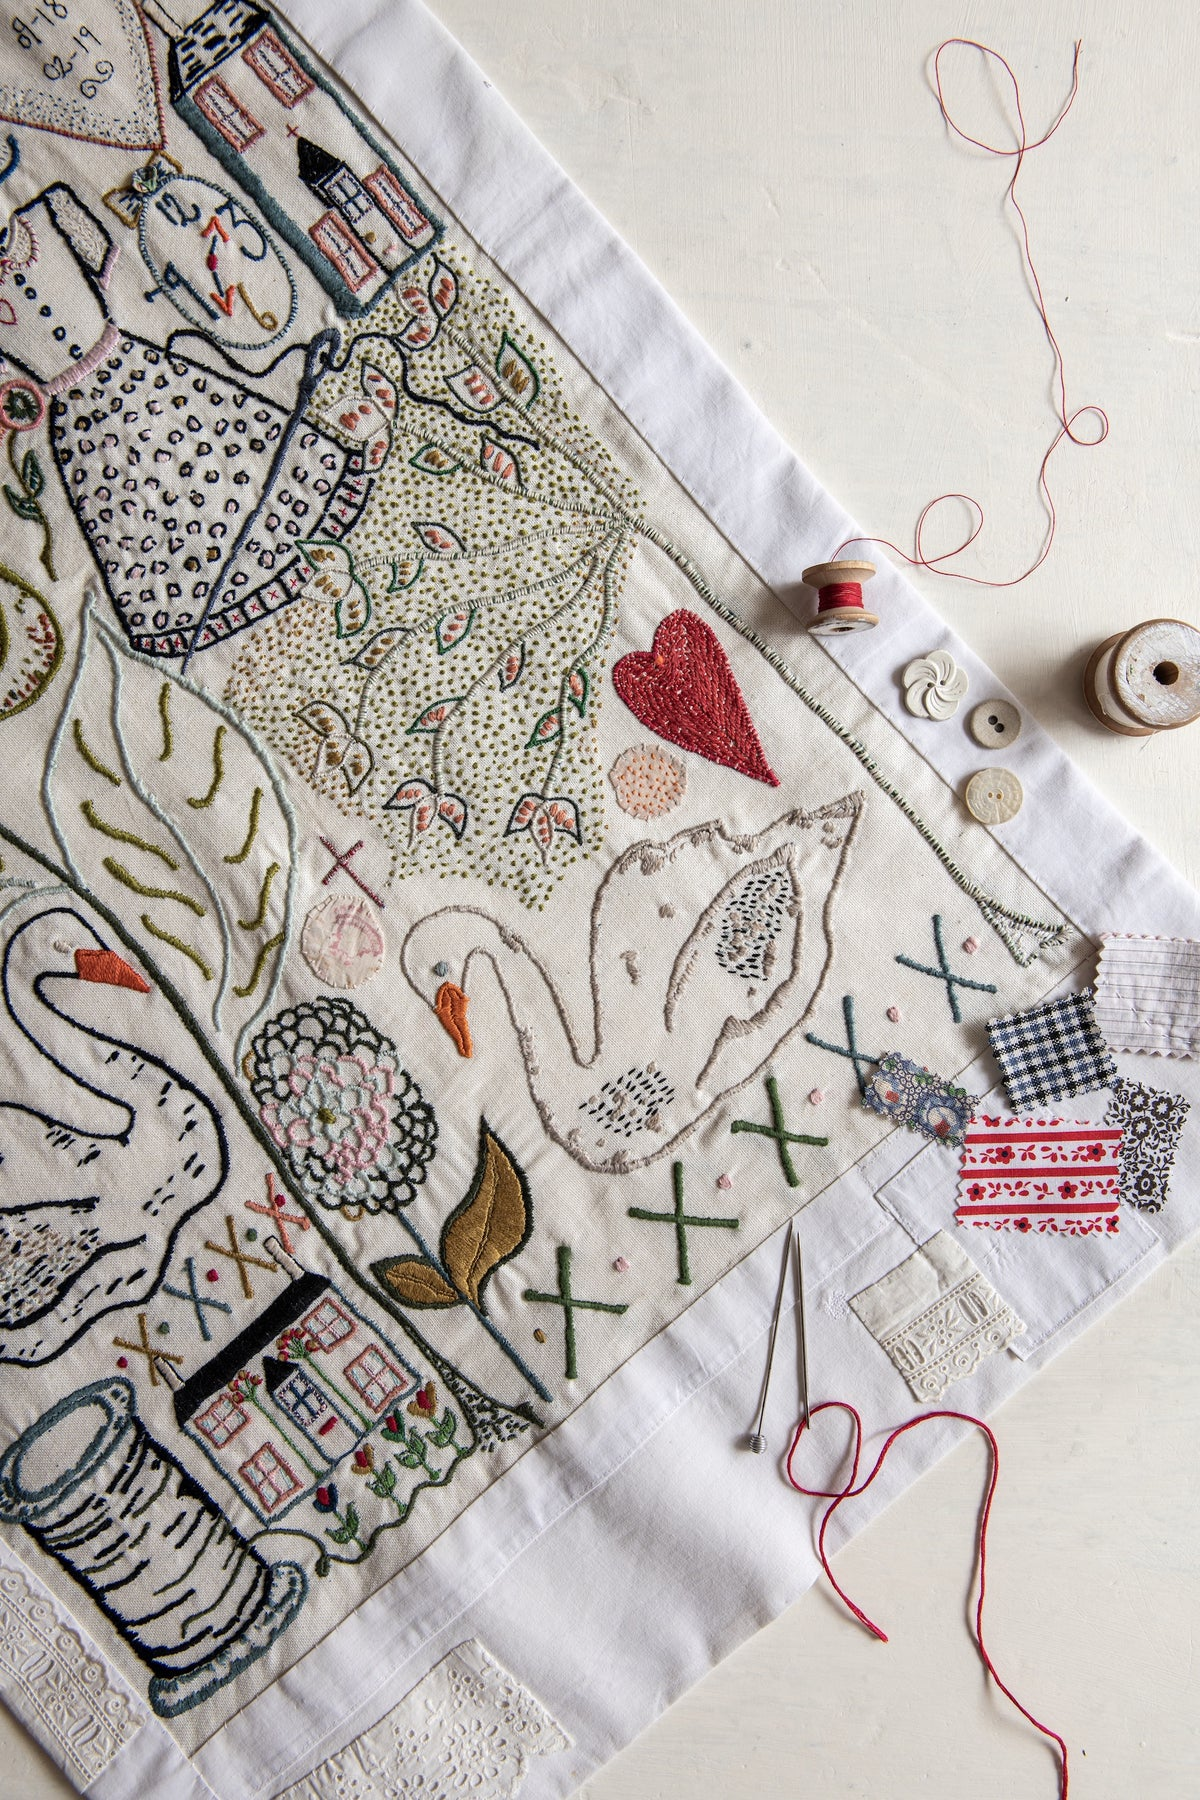 Image of 'The Garden' large embroidery template